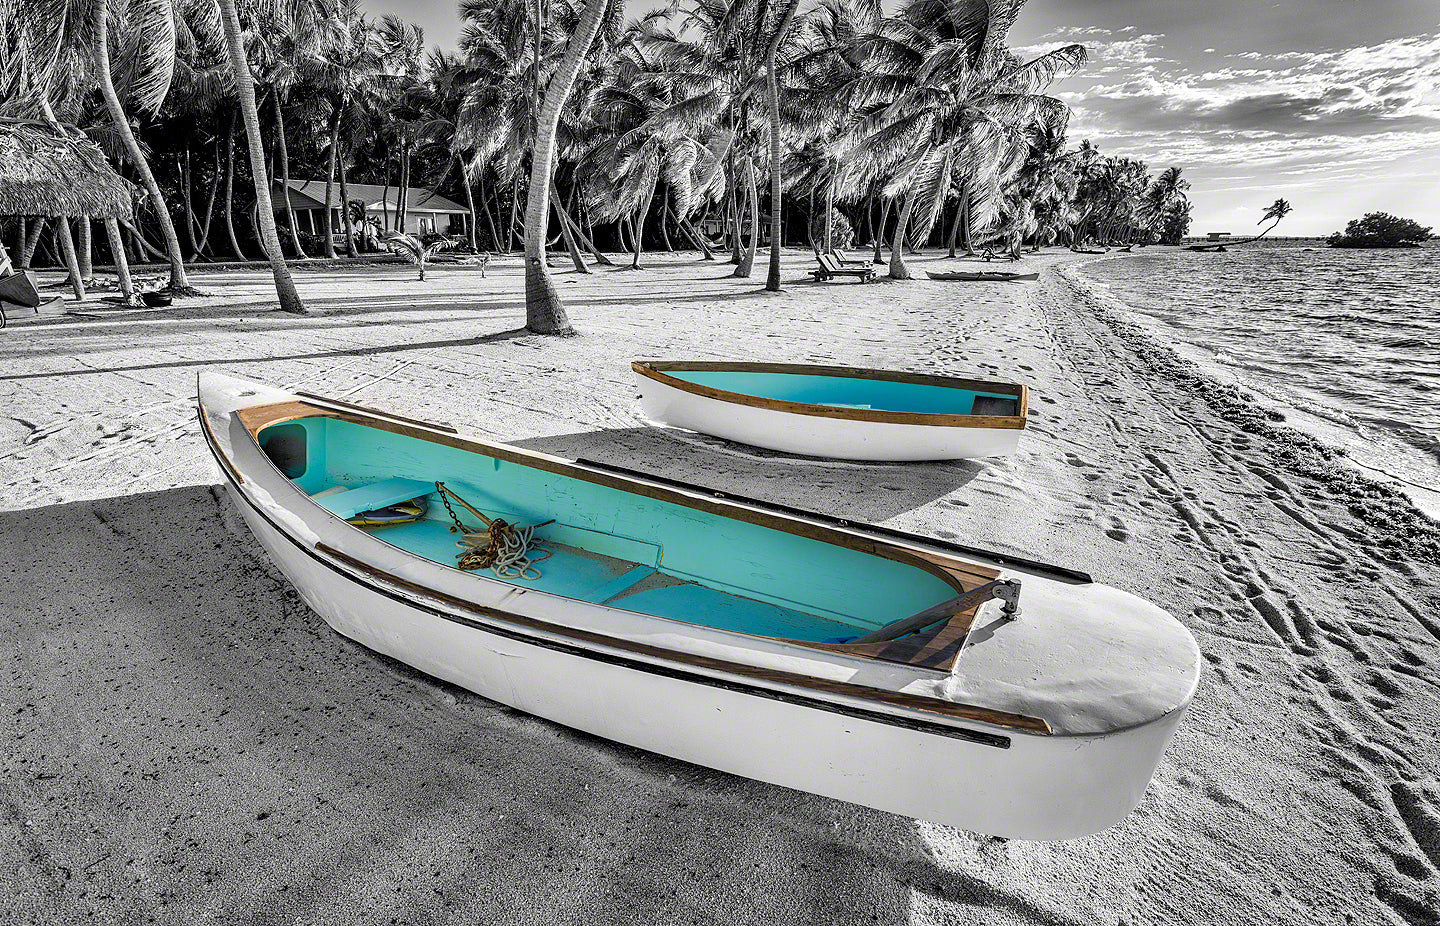 A photo of two turquoise colored boats with the rest of the scene in black and white